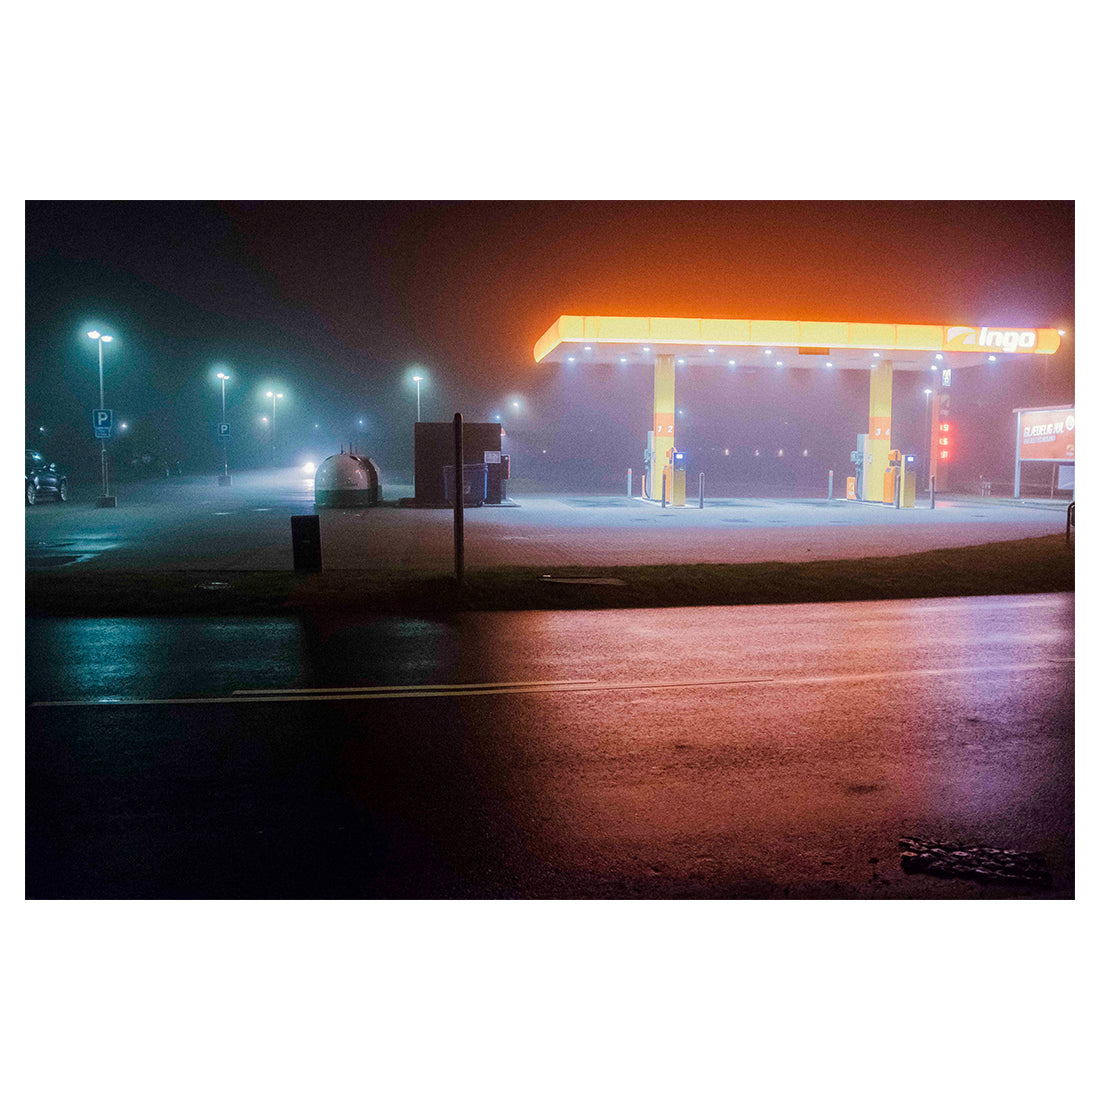 Between Dusk and Dawn - Gas Station